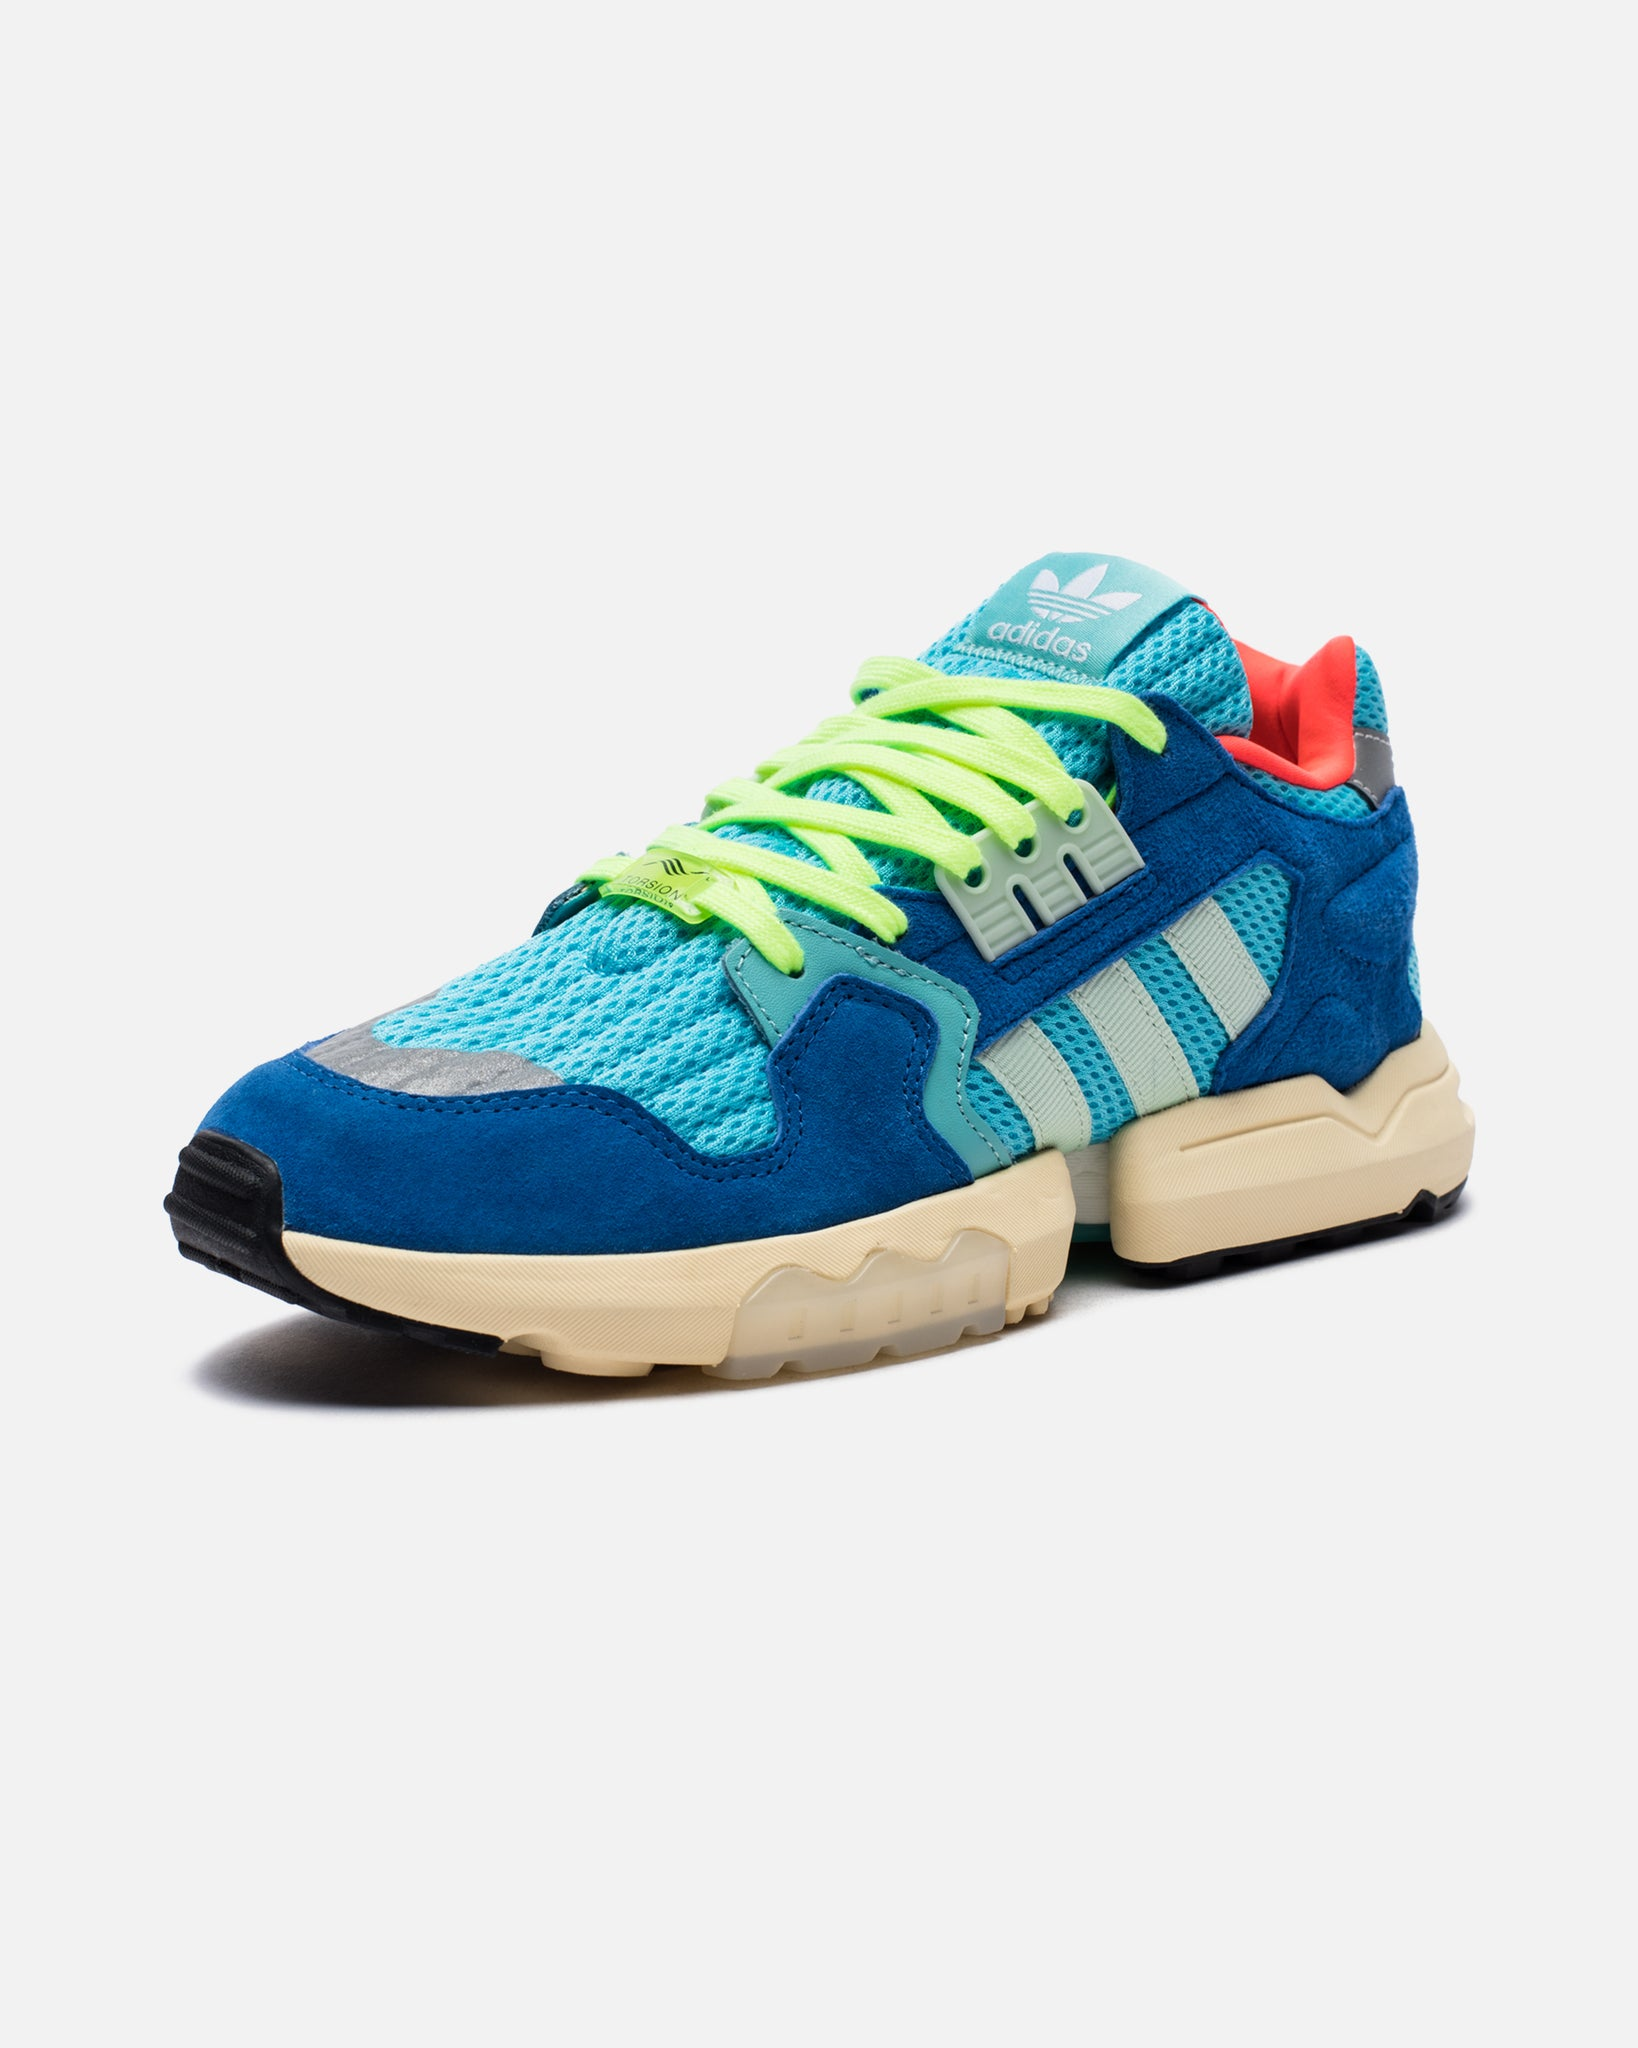 ZX TORSION - BRCYAN/LINGRN/BLUE